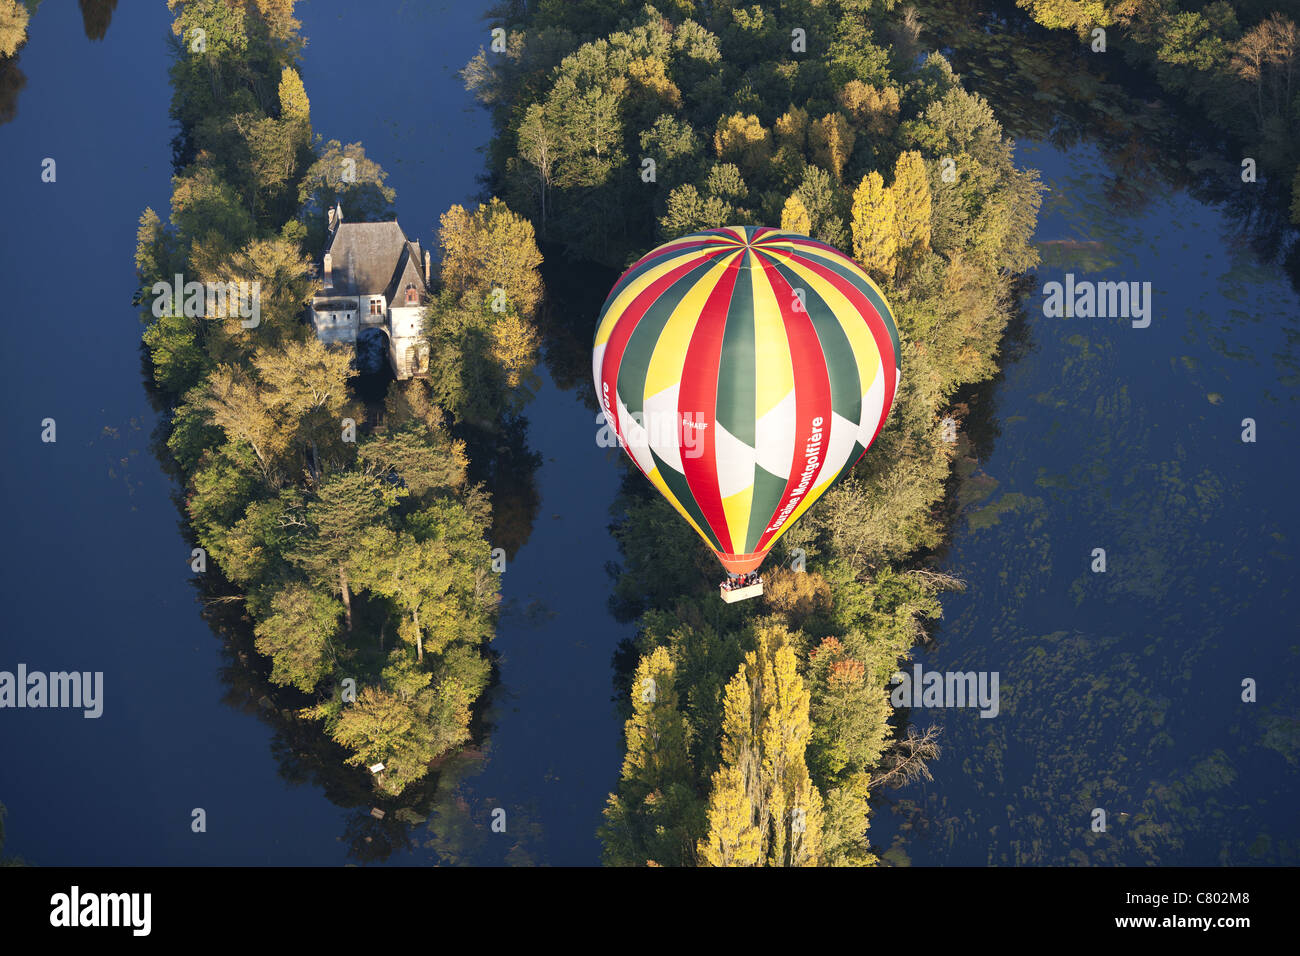 HOT AIR BALLOON DRIFTING OVER TWO SMALL ISLANDS ON THE CHER RIVER (aerial view). Chisseaux, Centre-Val de Loire, - Stock Image